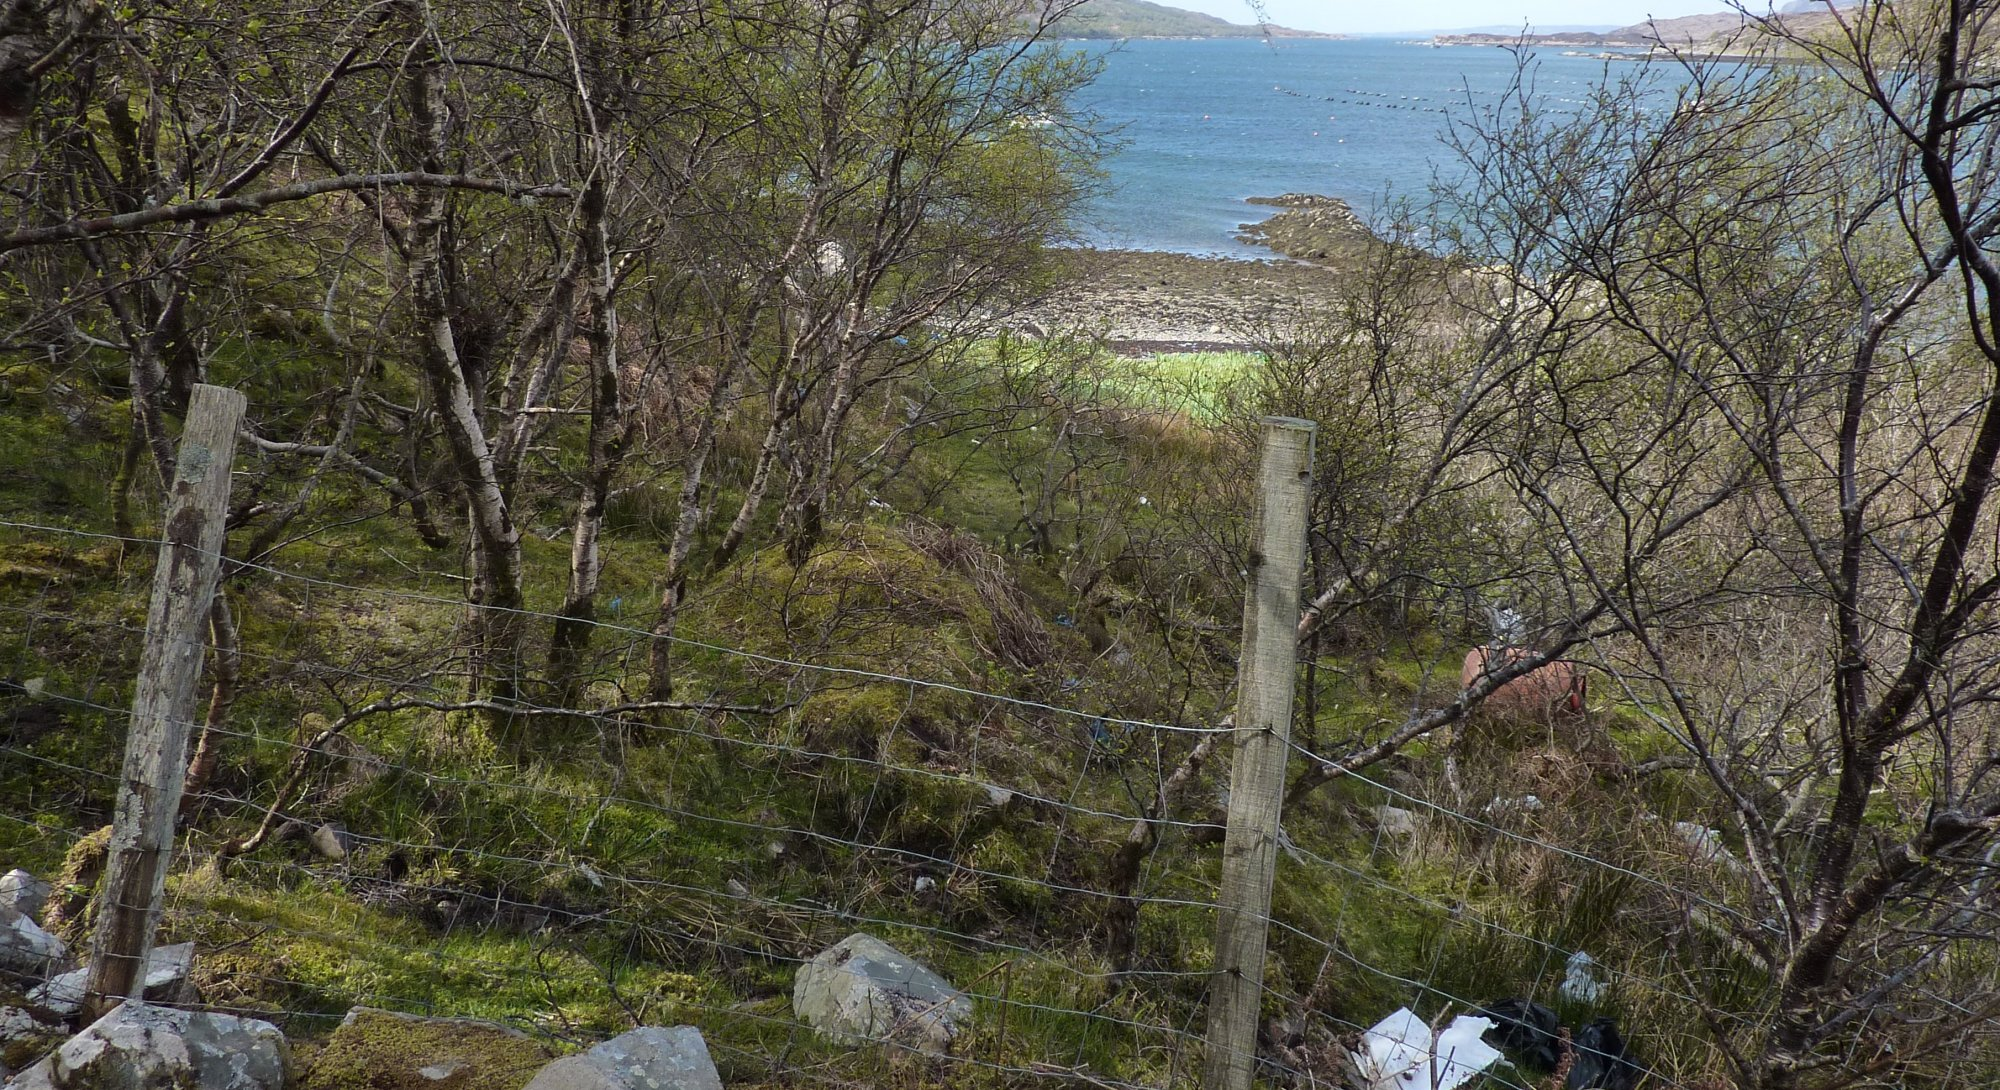 I went awry somewhere and had to hack my way through some undergrowth to get back to the shore at Drumfearn harbour